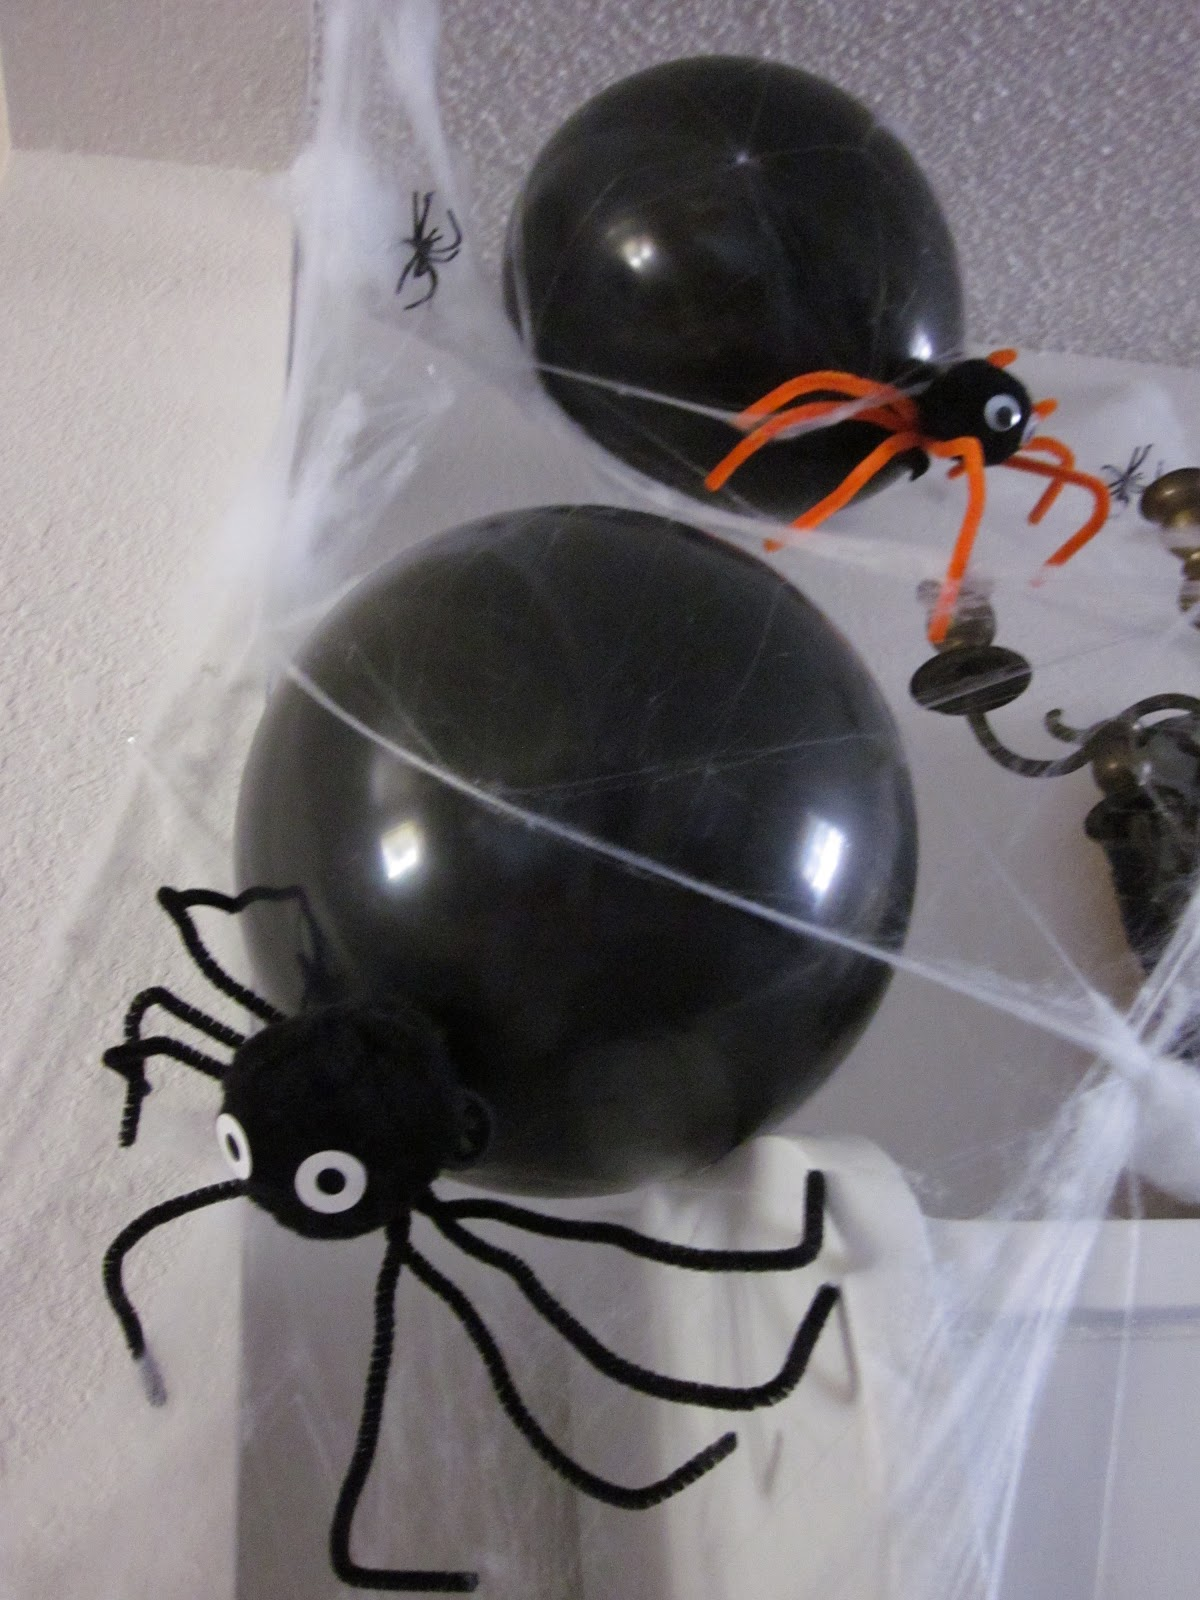 Halloween Decorations You Can Make At Home Apples 4 Bookworms Halloween Balloon Spiders